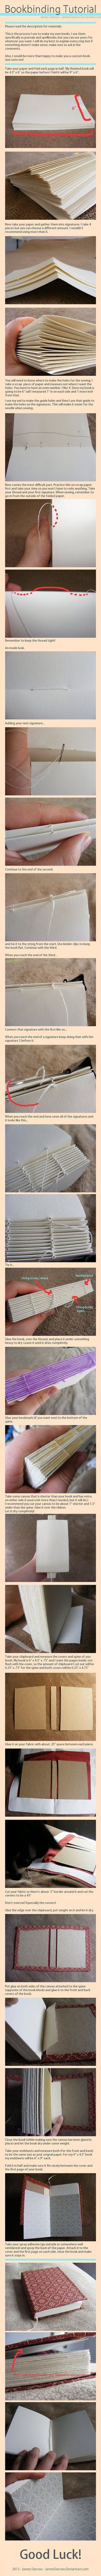 DIY book binding tutorial - JamesDarrow on Deviantart